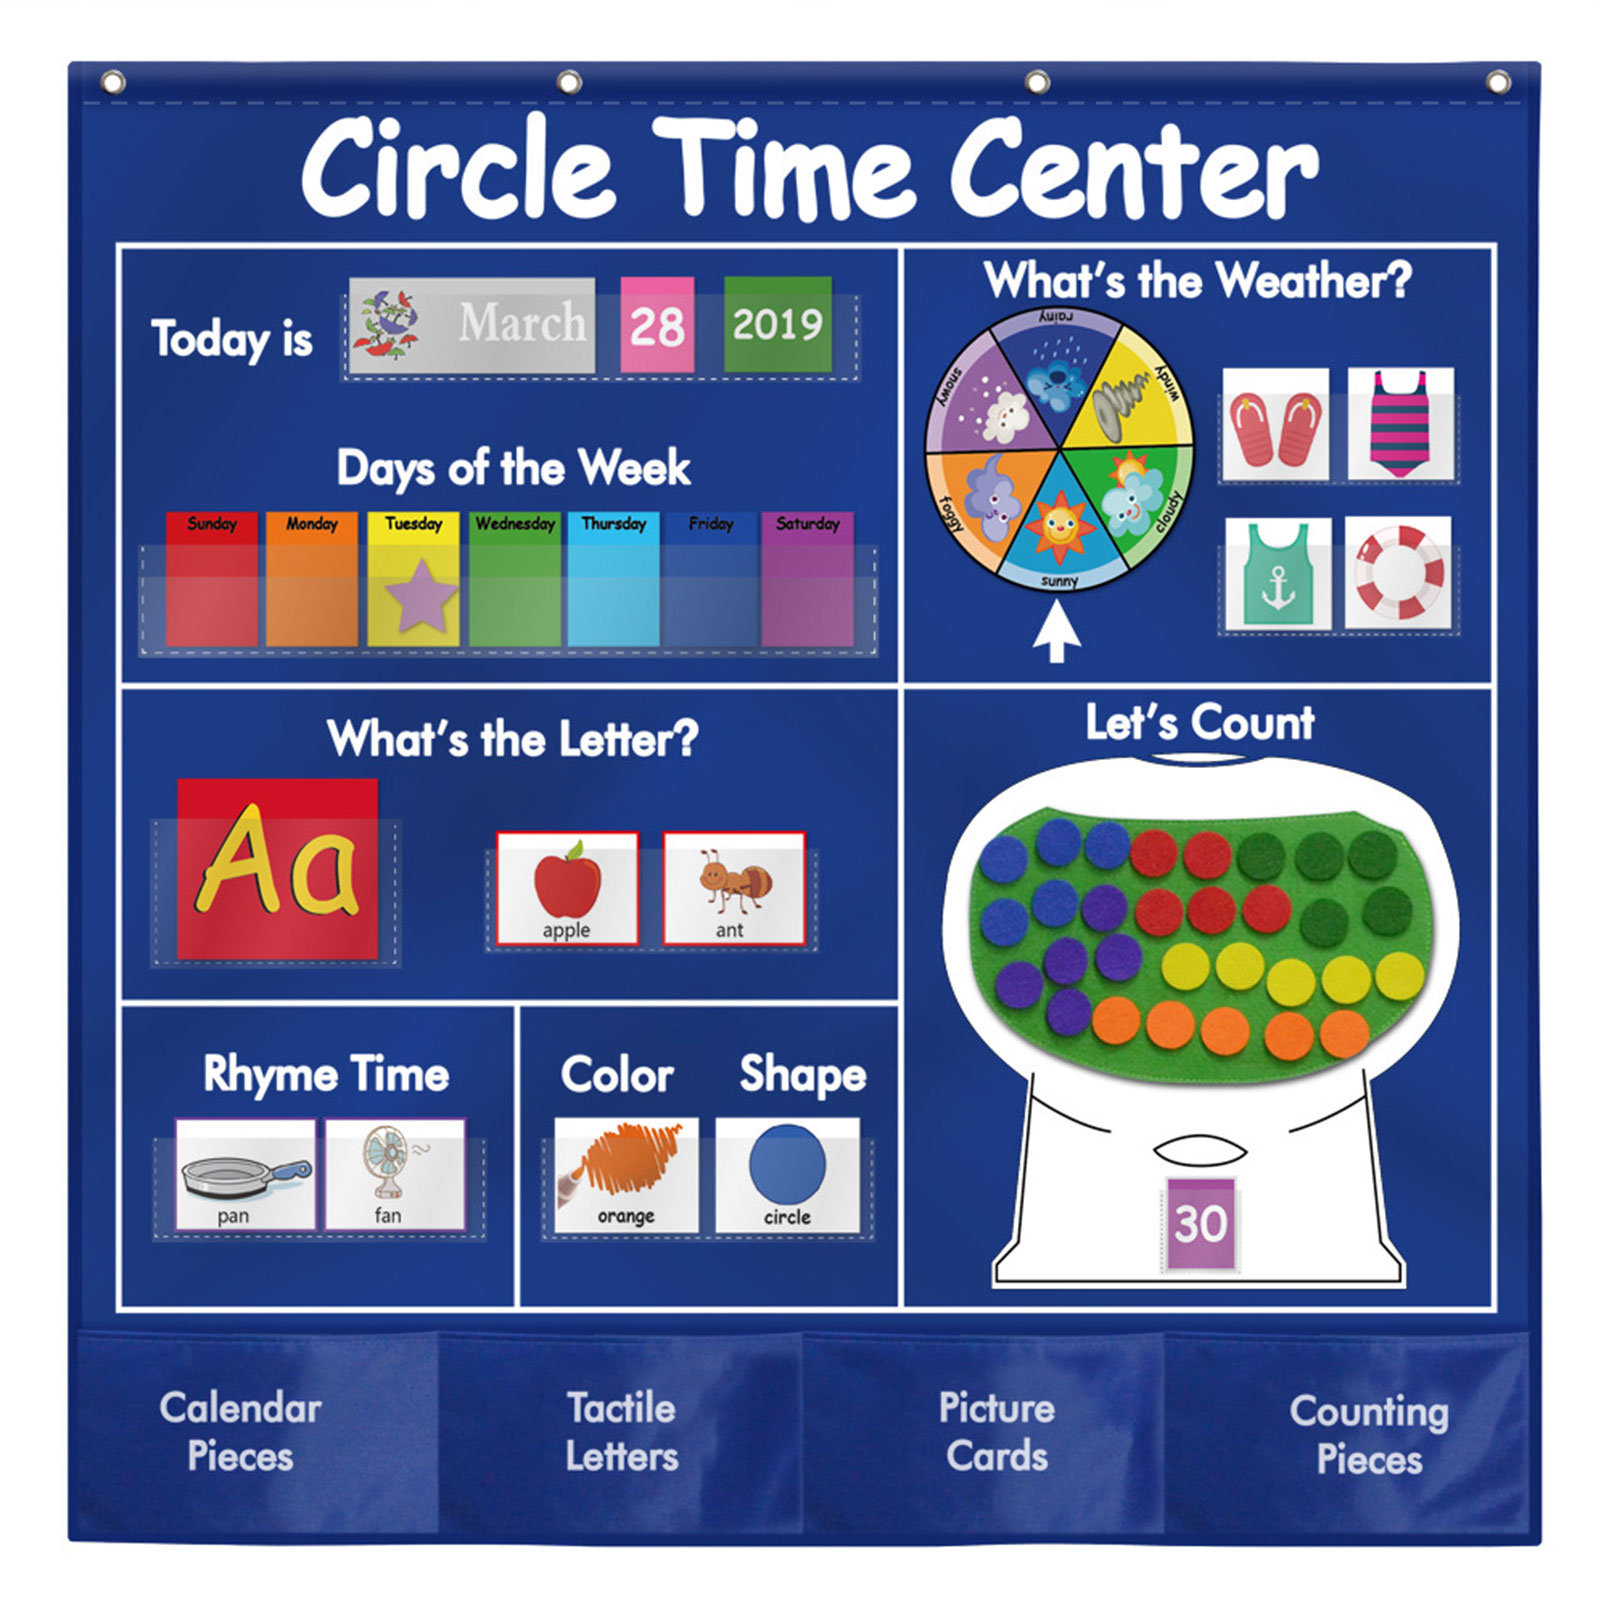 Calendar Weather Card Letter Words Math Card Cycle Time Learning Center Card Bag Preschool Children Learning Atlas